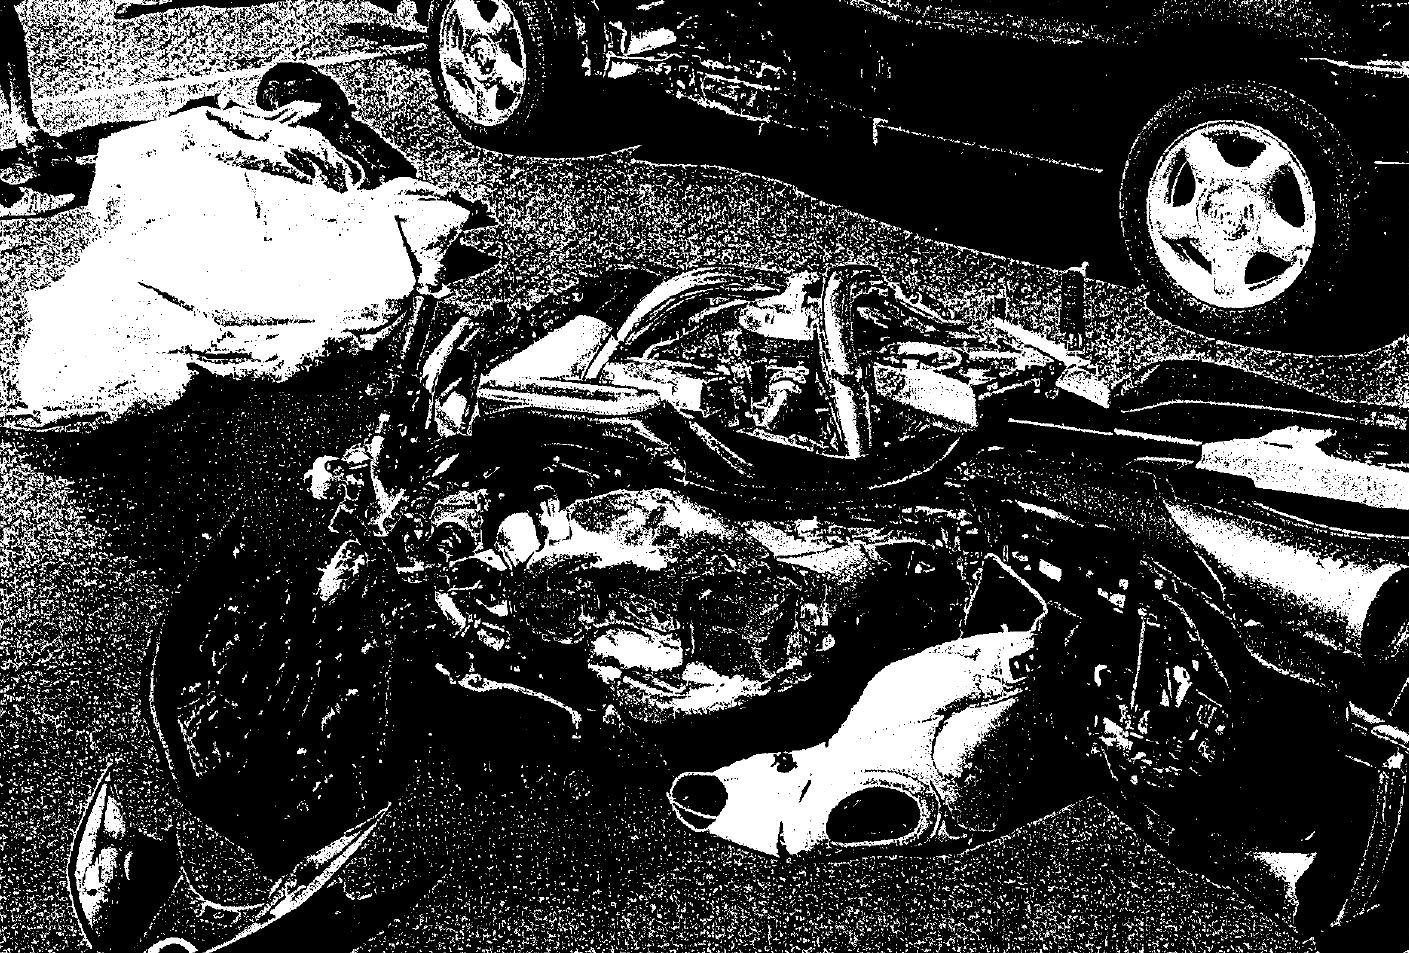 22.06.2005 Serious traffic accident of our founder